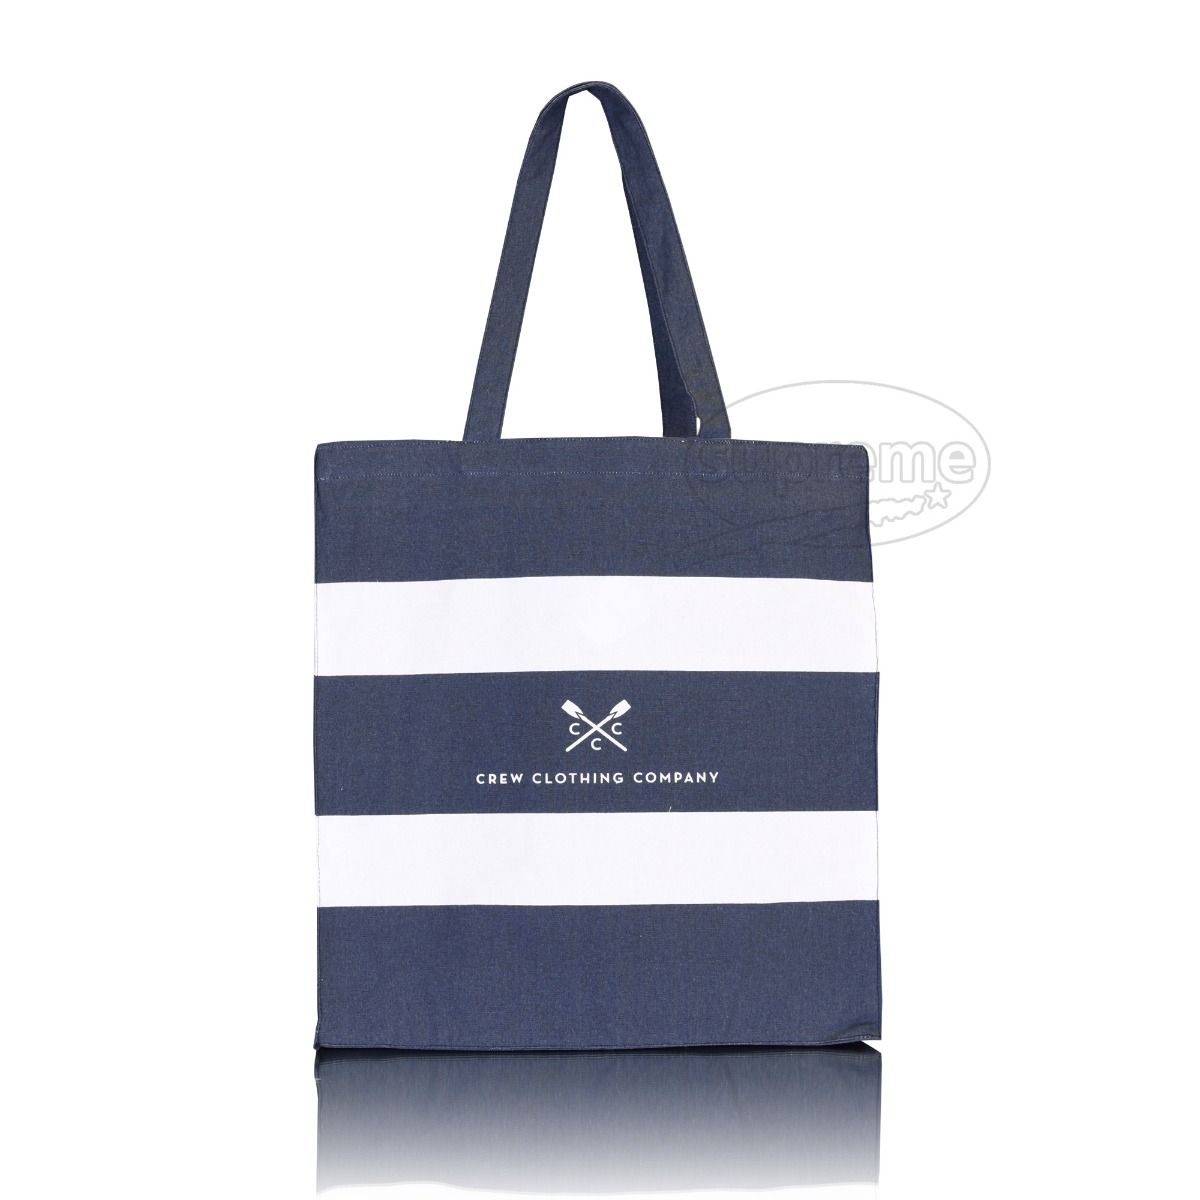 personalised cotton bags wholesale